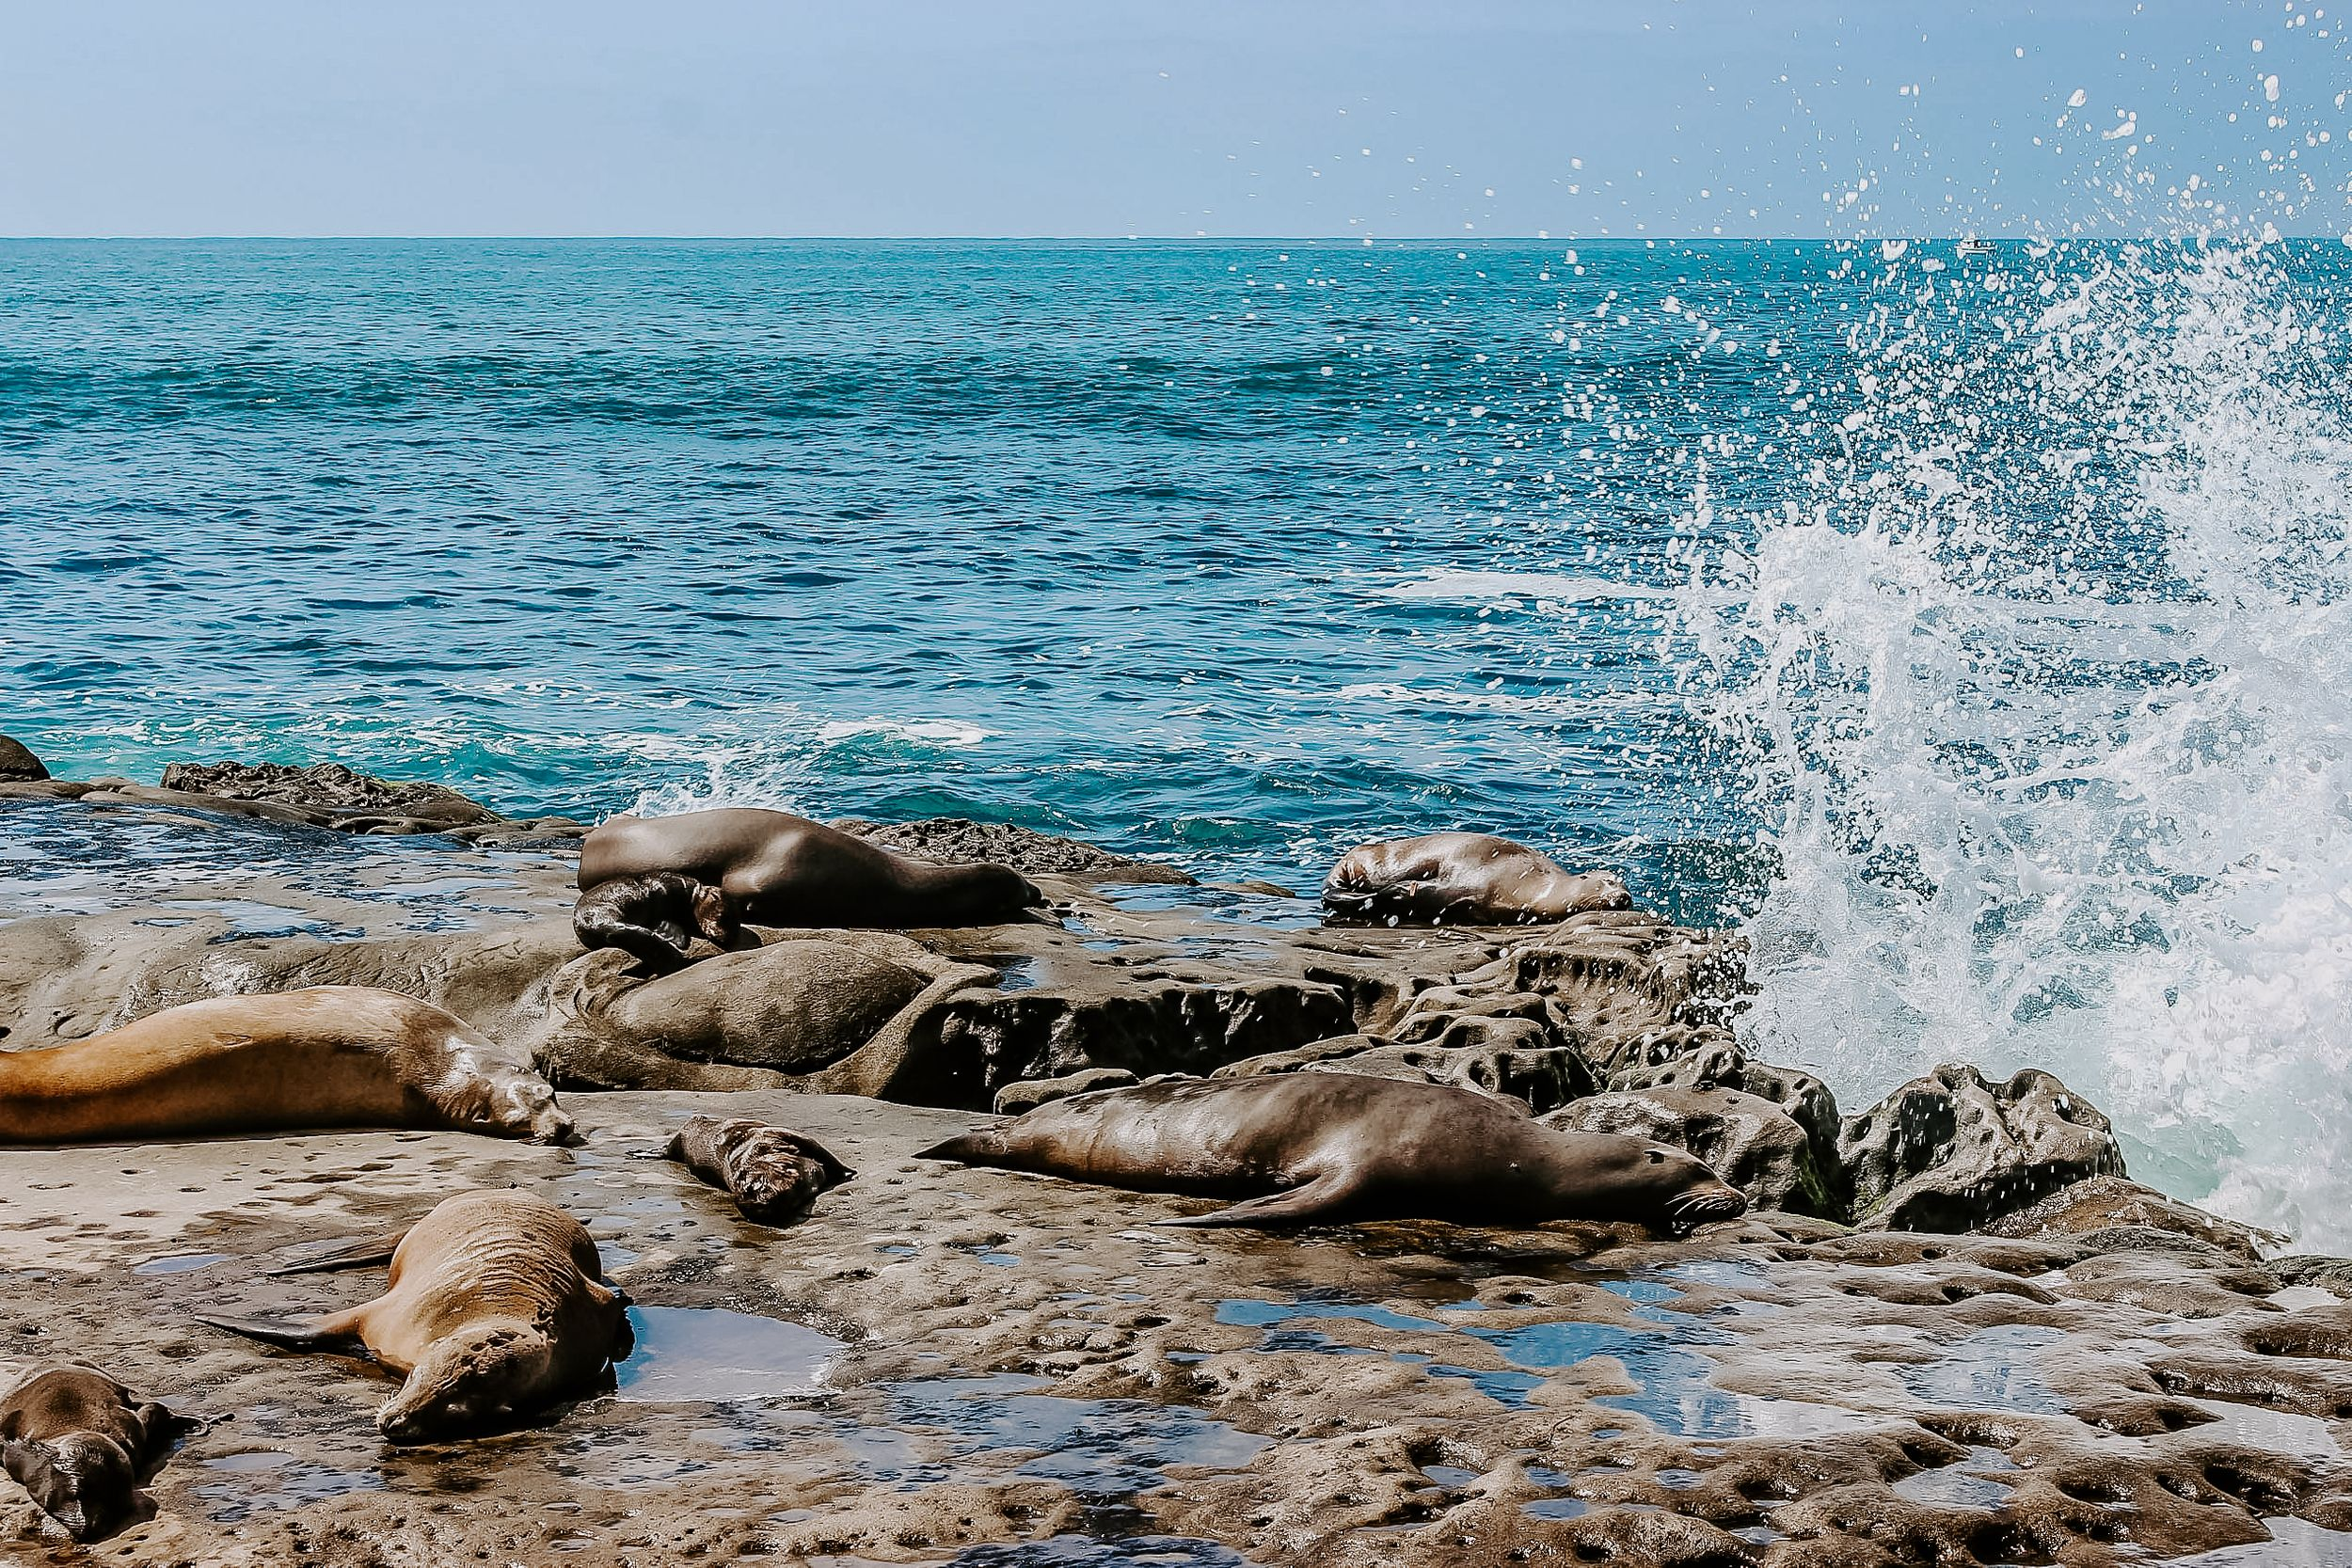 seals sitting on rocks while water splashes up near them in San Diego